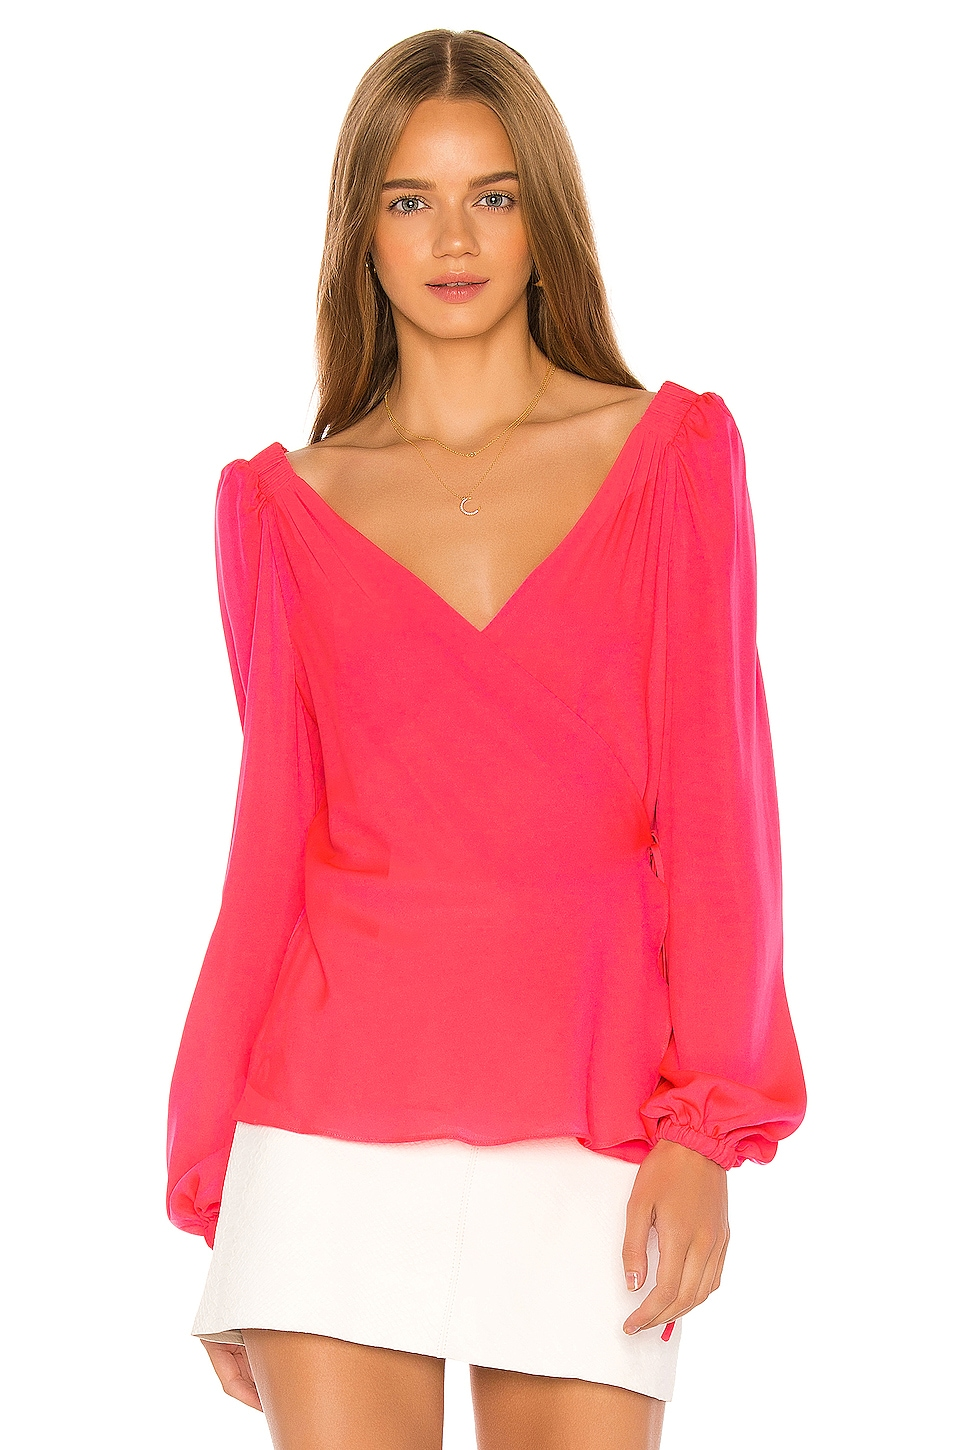 MILLY Hallie Wrap Top in Bombshell Pink